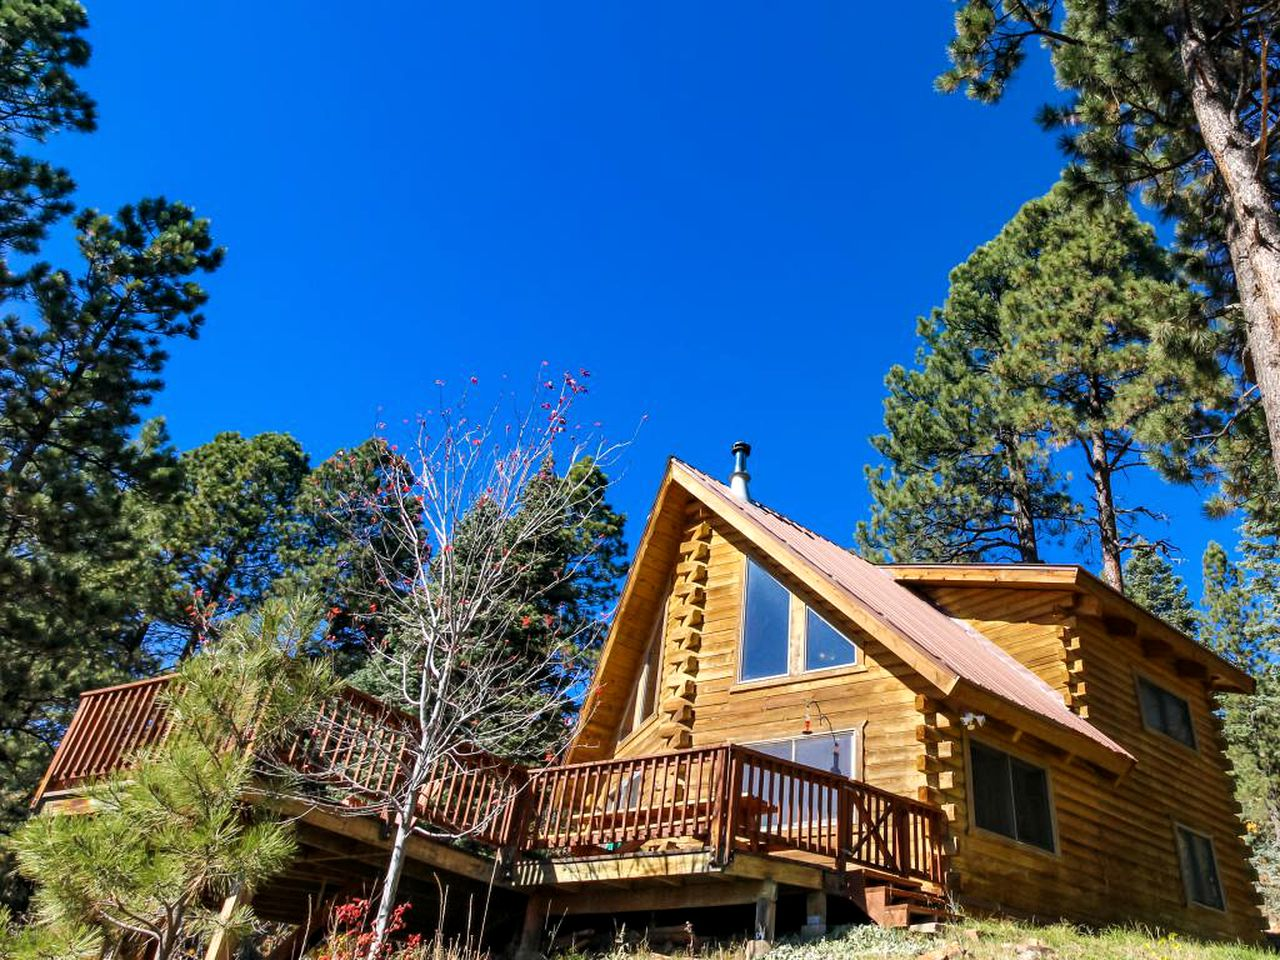 Cabins (Durango, Colorado, United States)